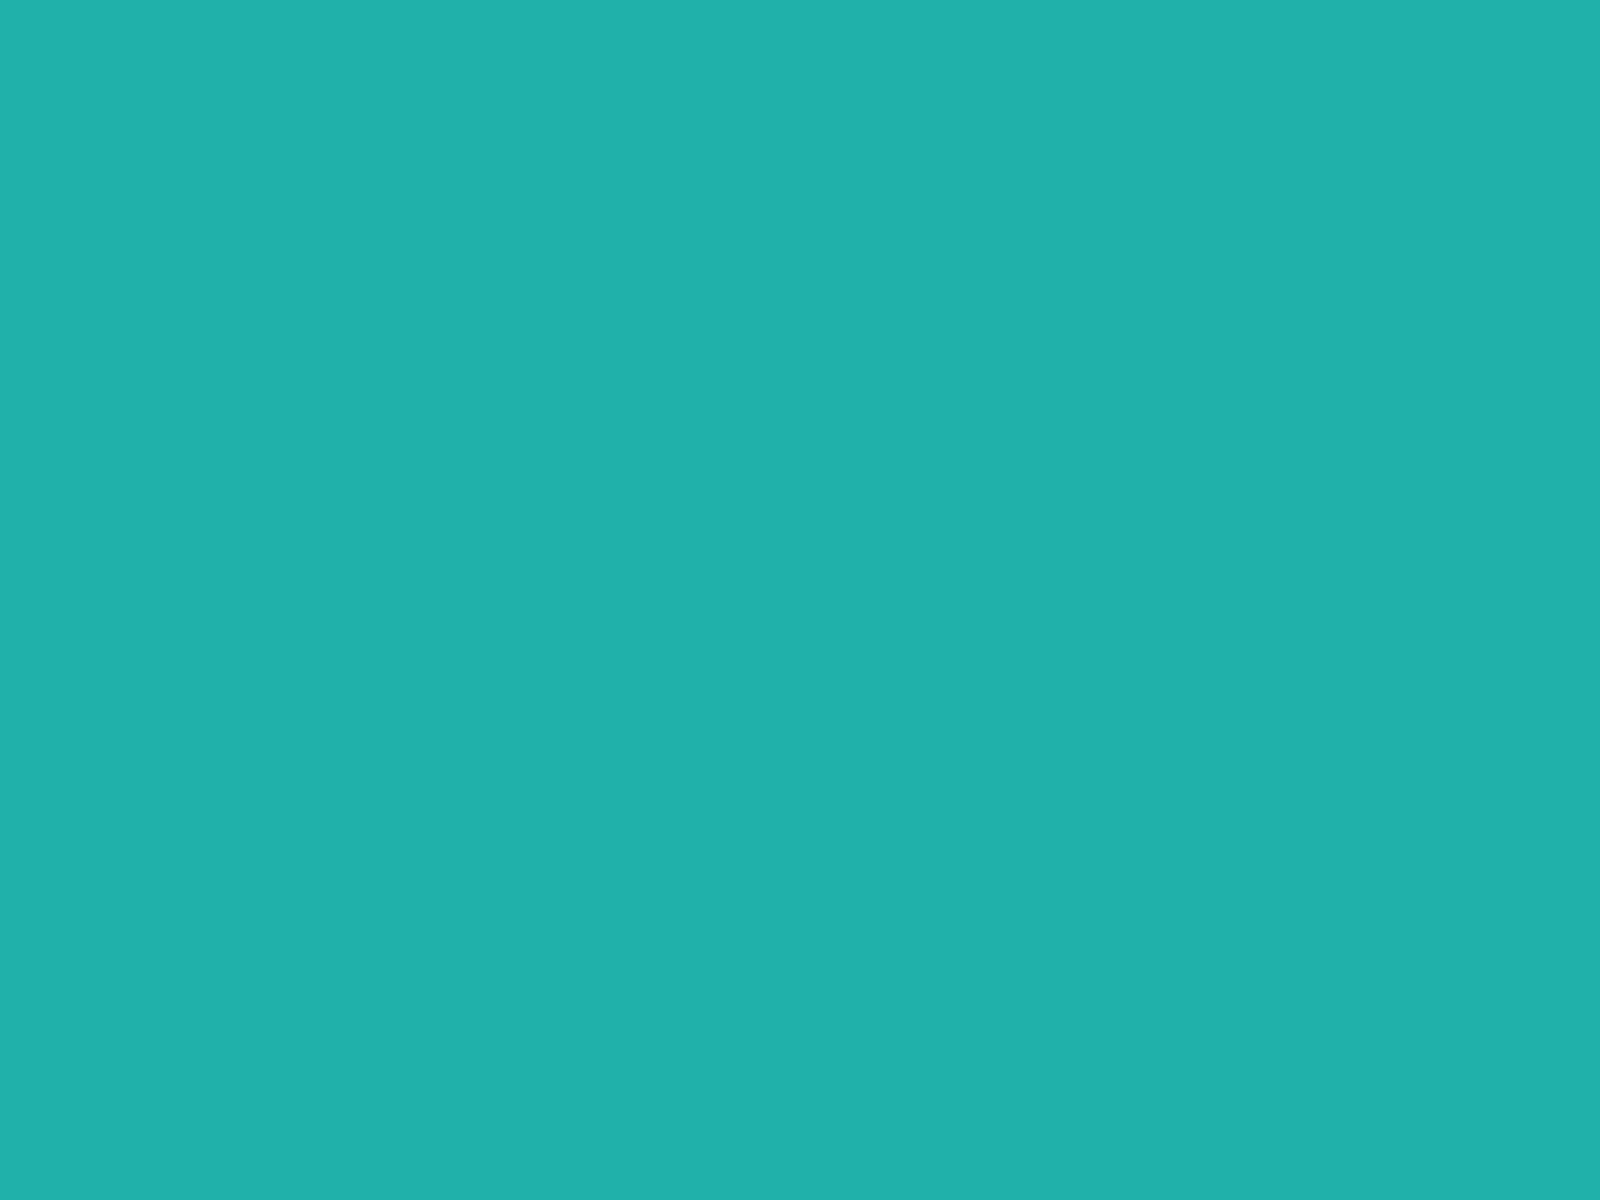 1600x1200 Light Sea Green Solid Color Background